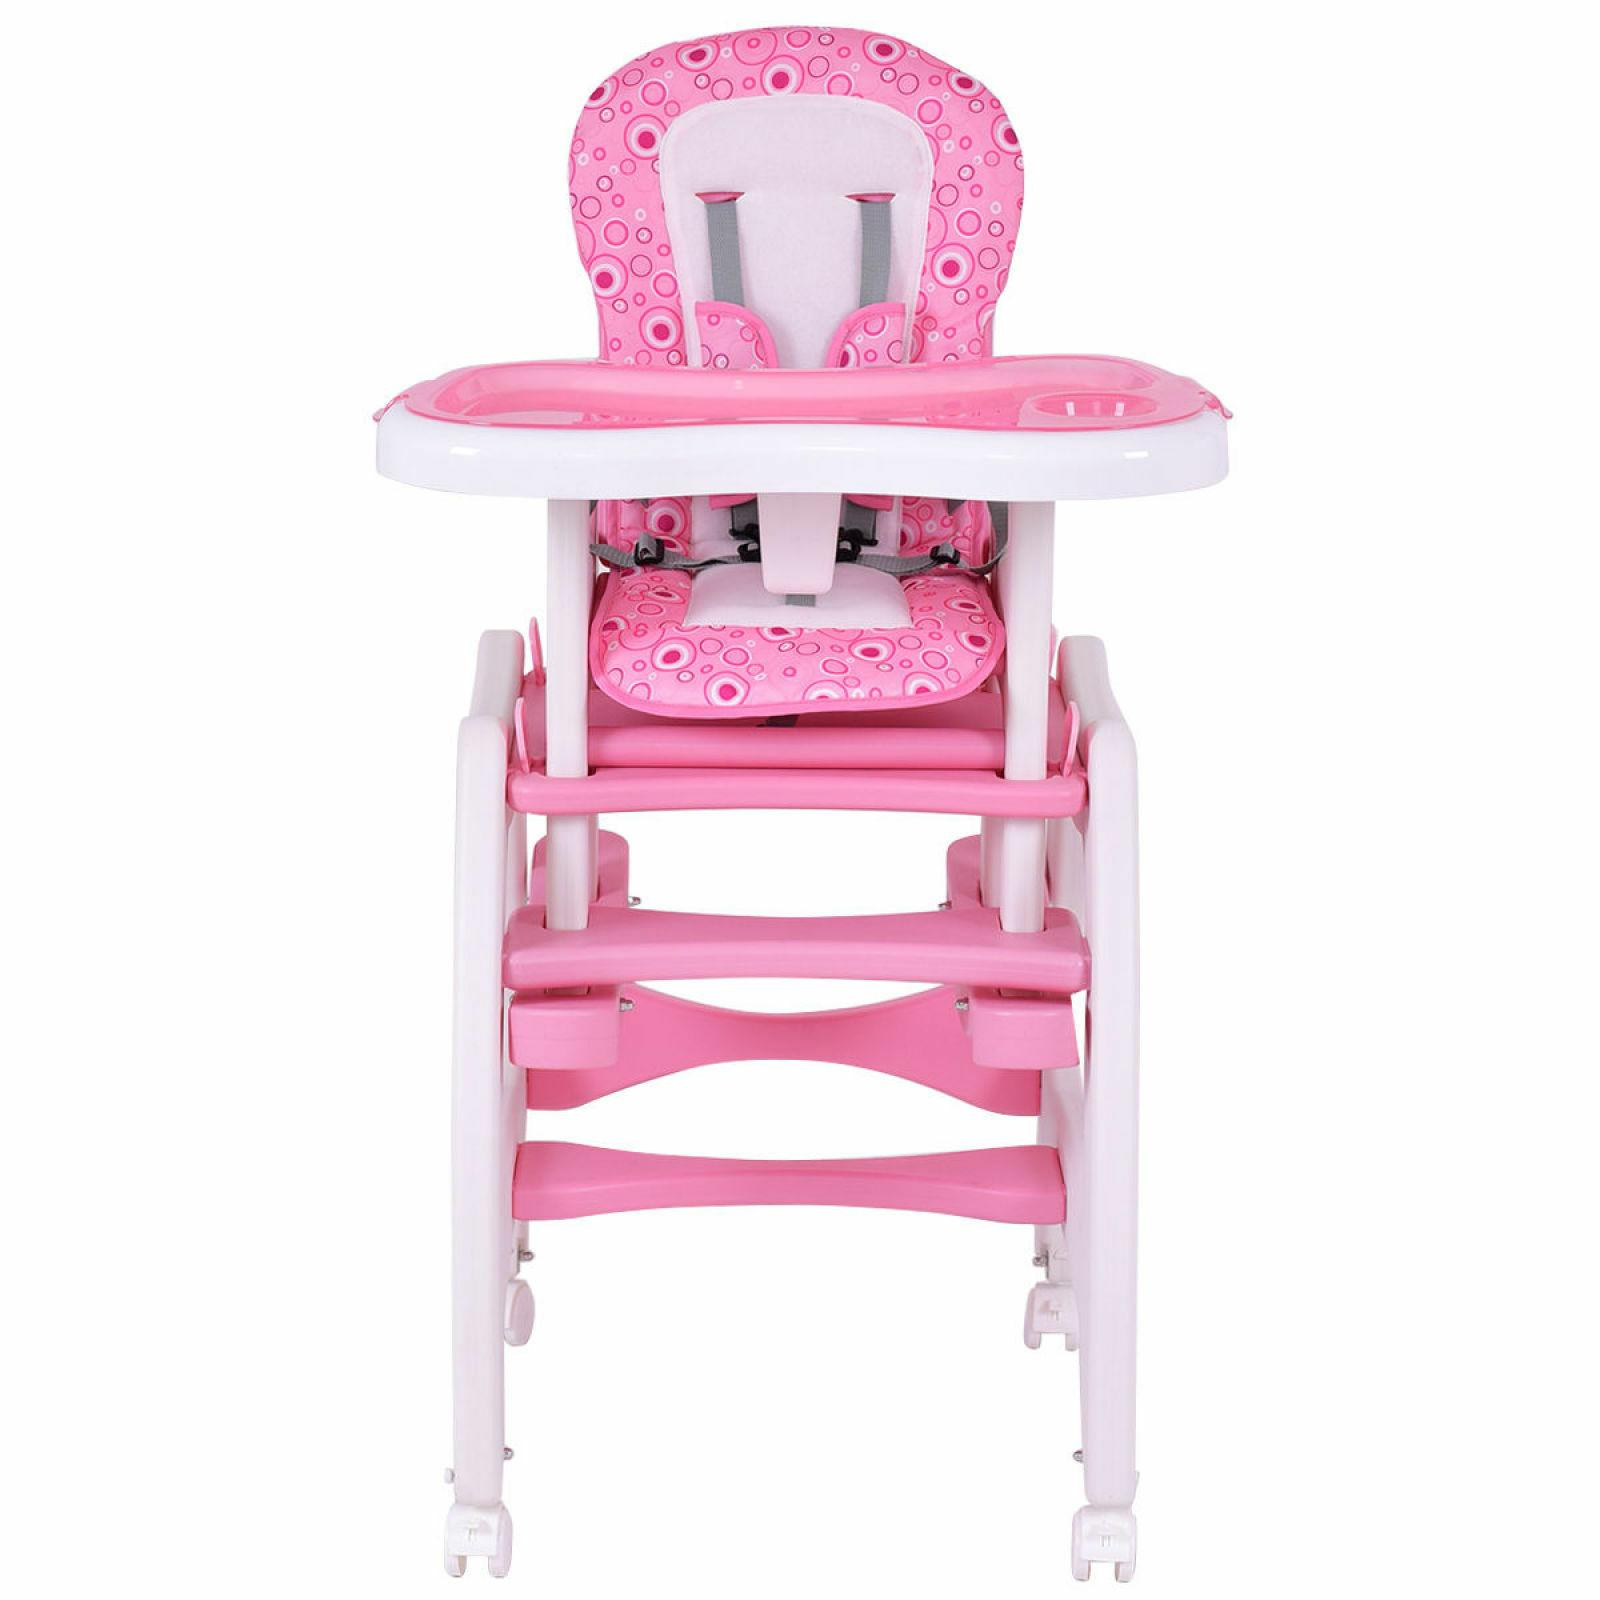 Costway Baby High Play Table Booster Toddler Pink